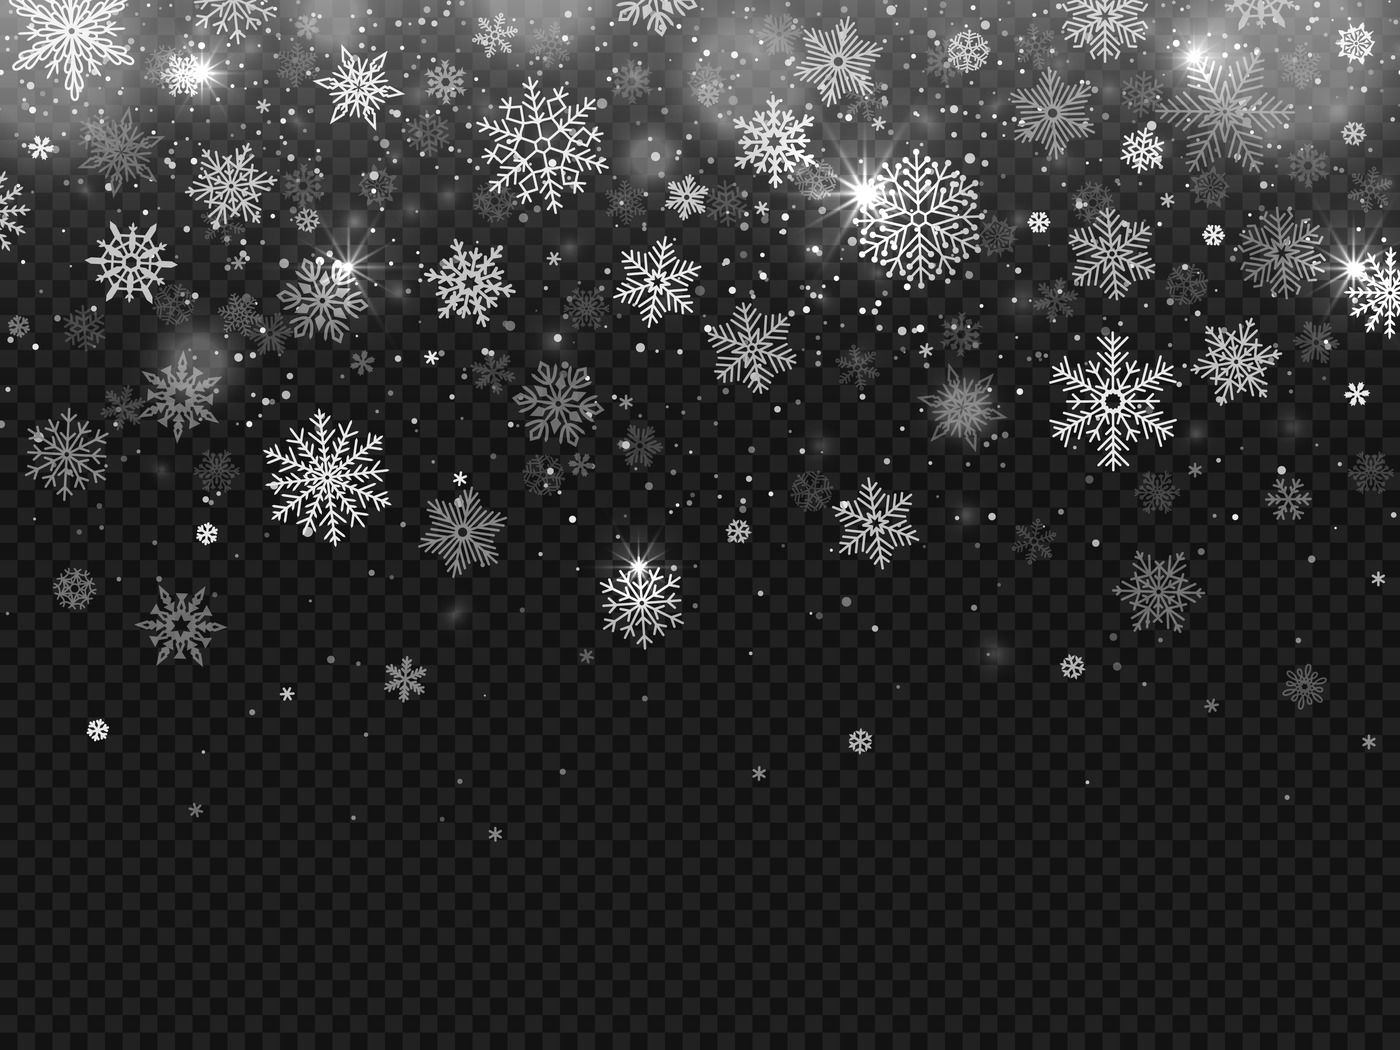 Winter Falling Snow Snowflakes Fall Christmas Decorations